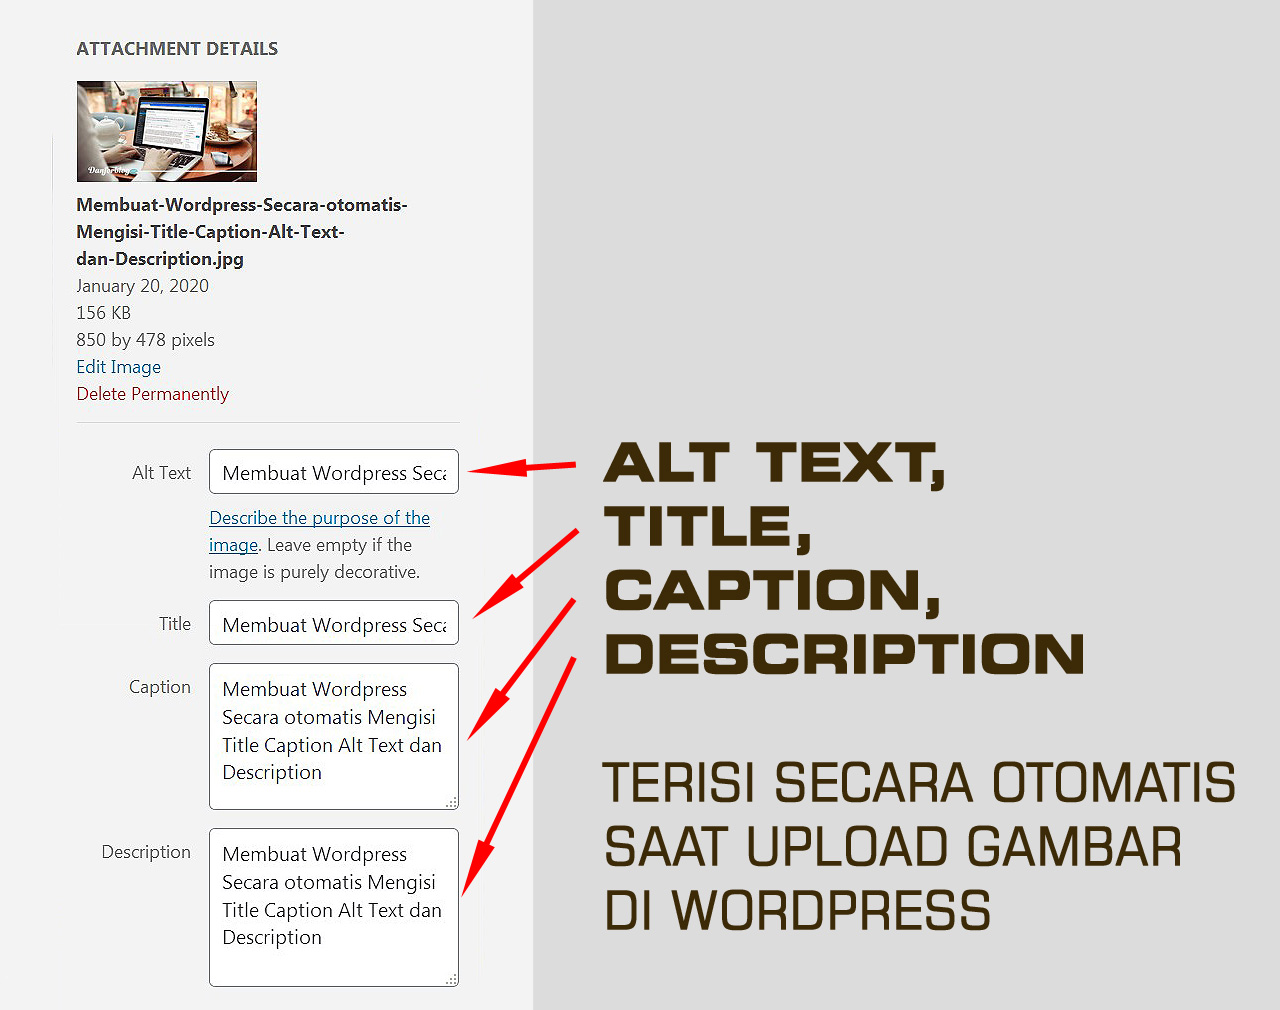 ALT TEXT, TITLE, CAPTION, DESCRIPTION akan Terisi Secara Otomatis Saat Upload Gambar di WordPress